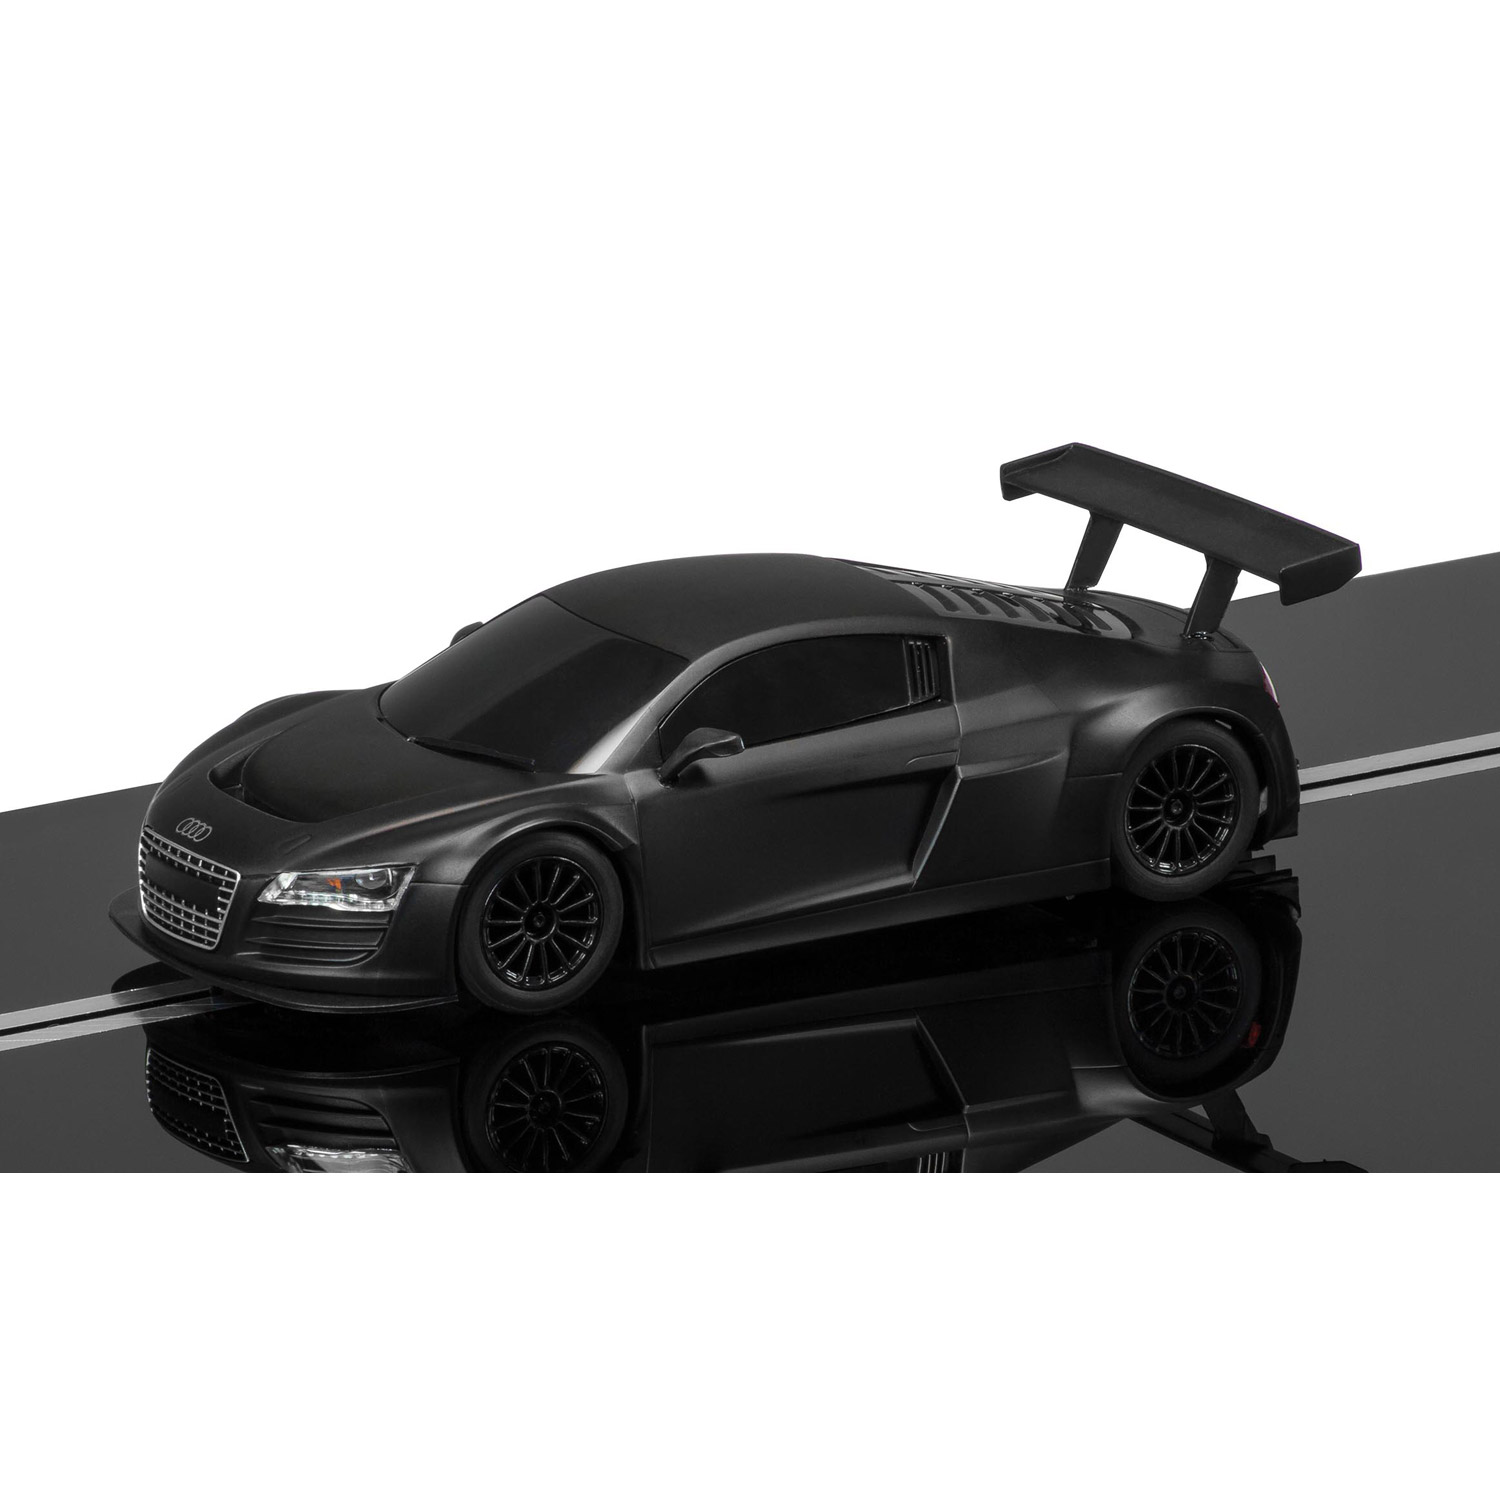 voiture pour circuit echelle 1 32 audi r8 lms noire ebay. Black Bedroom Furniture Sets. Home Design Ideas